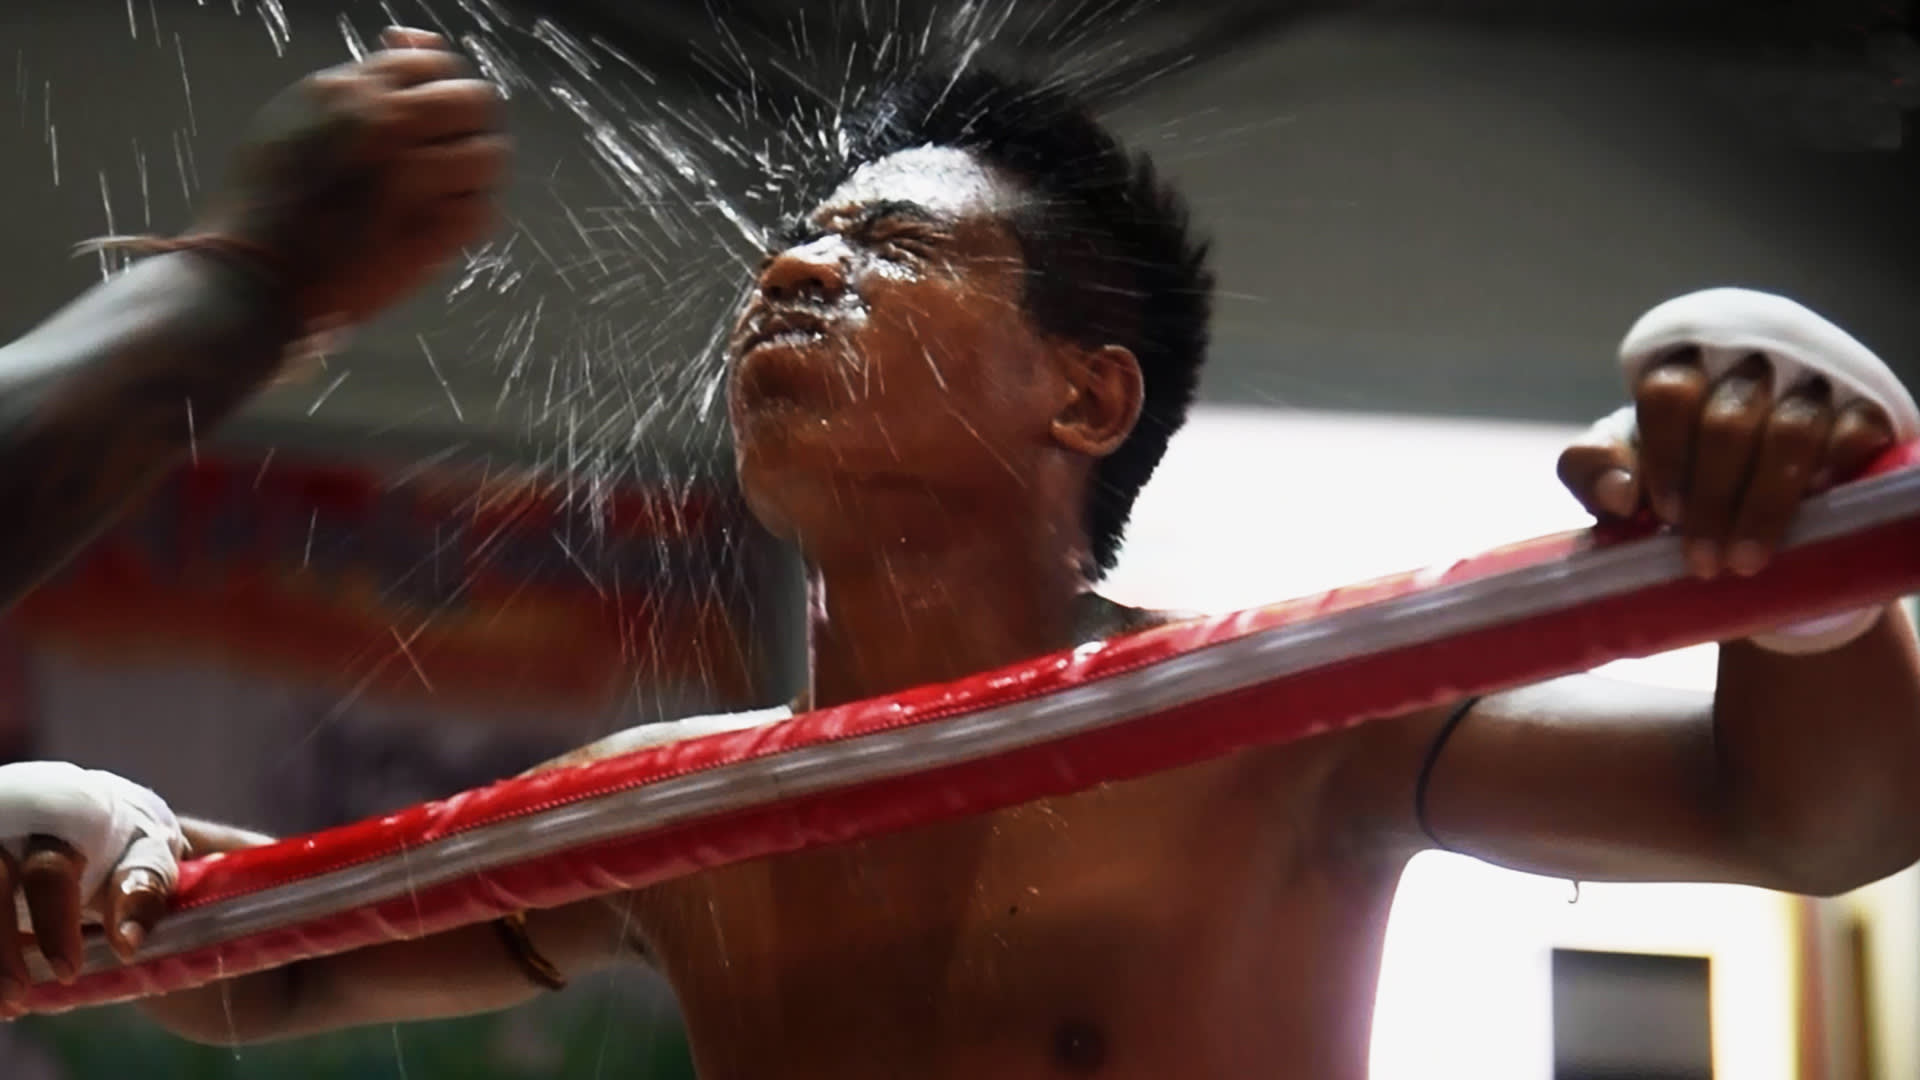 Myanmar's Lethwei - the most brutal combat sport in the world? | Video